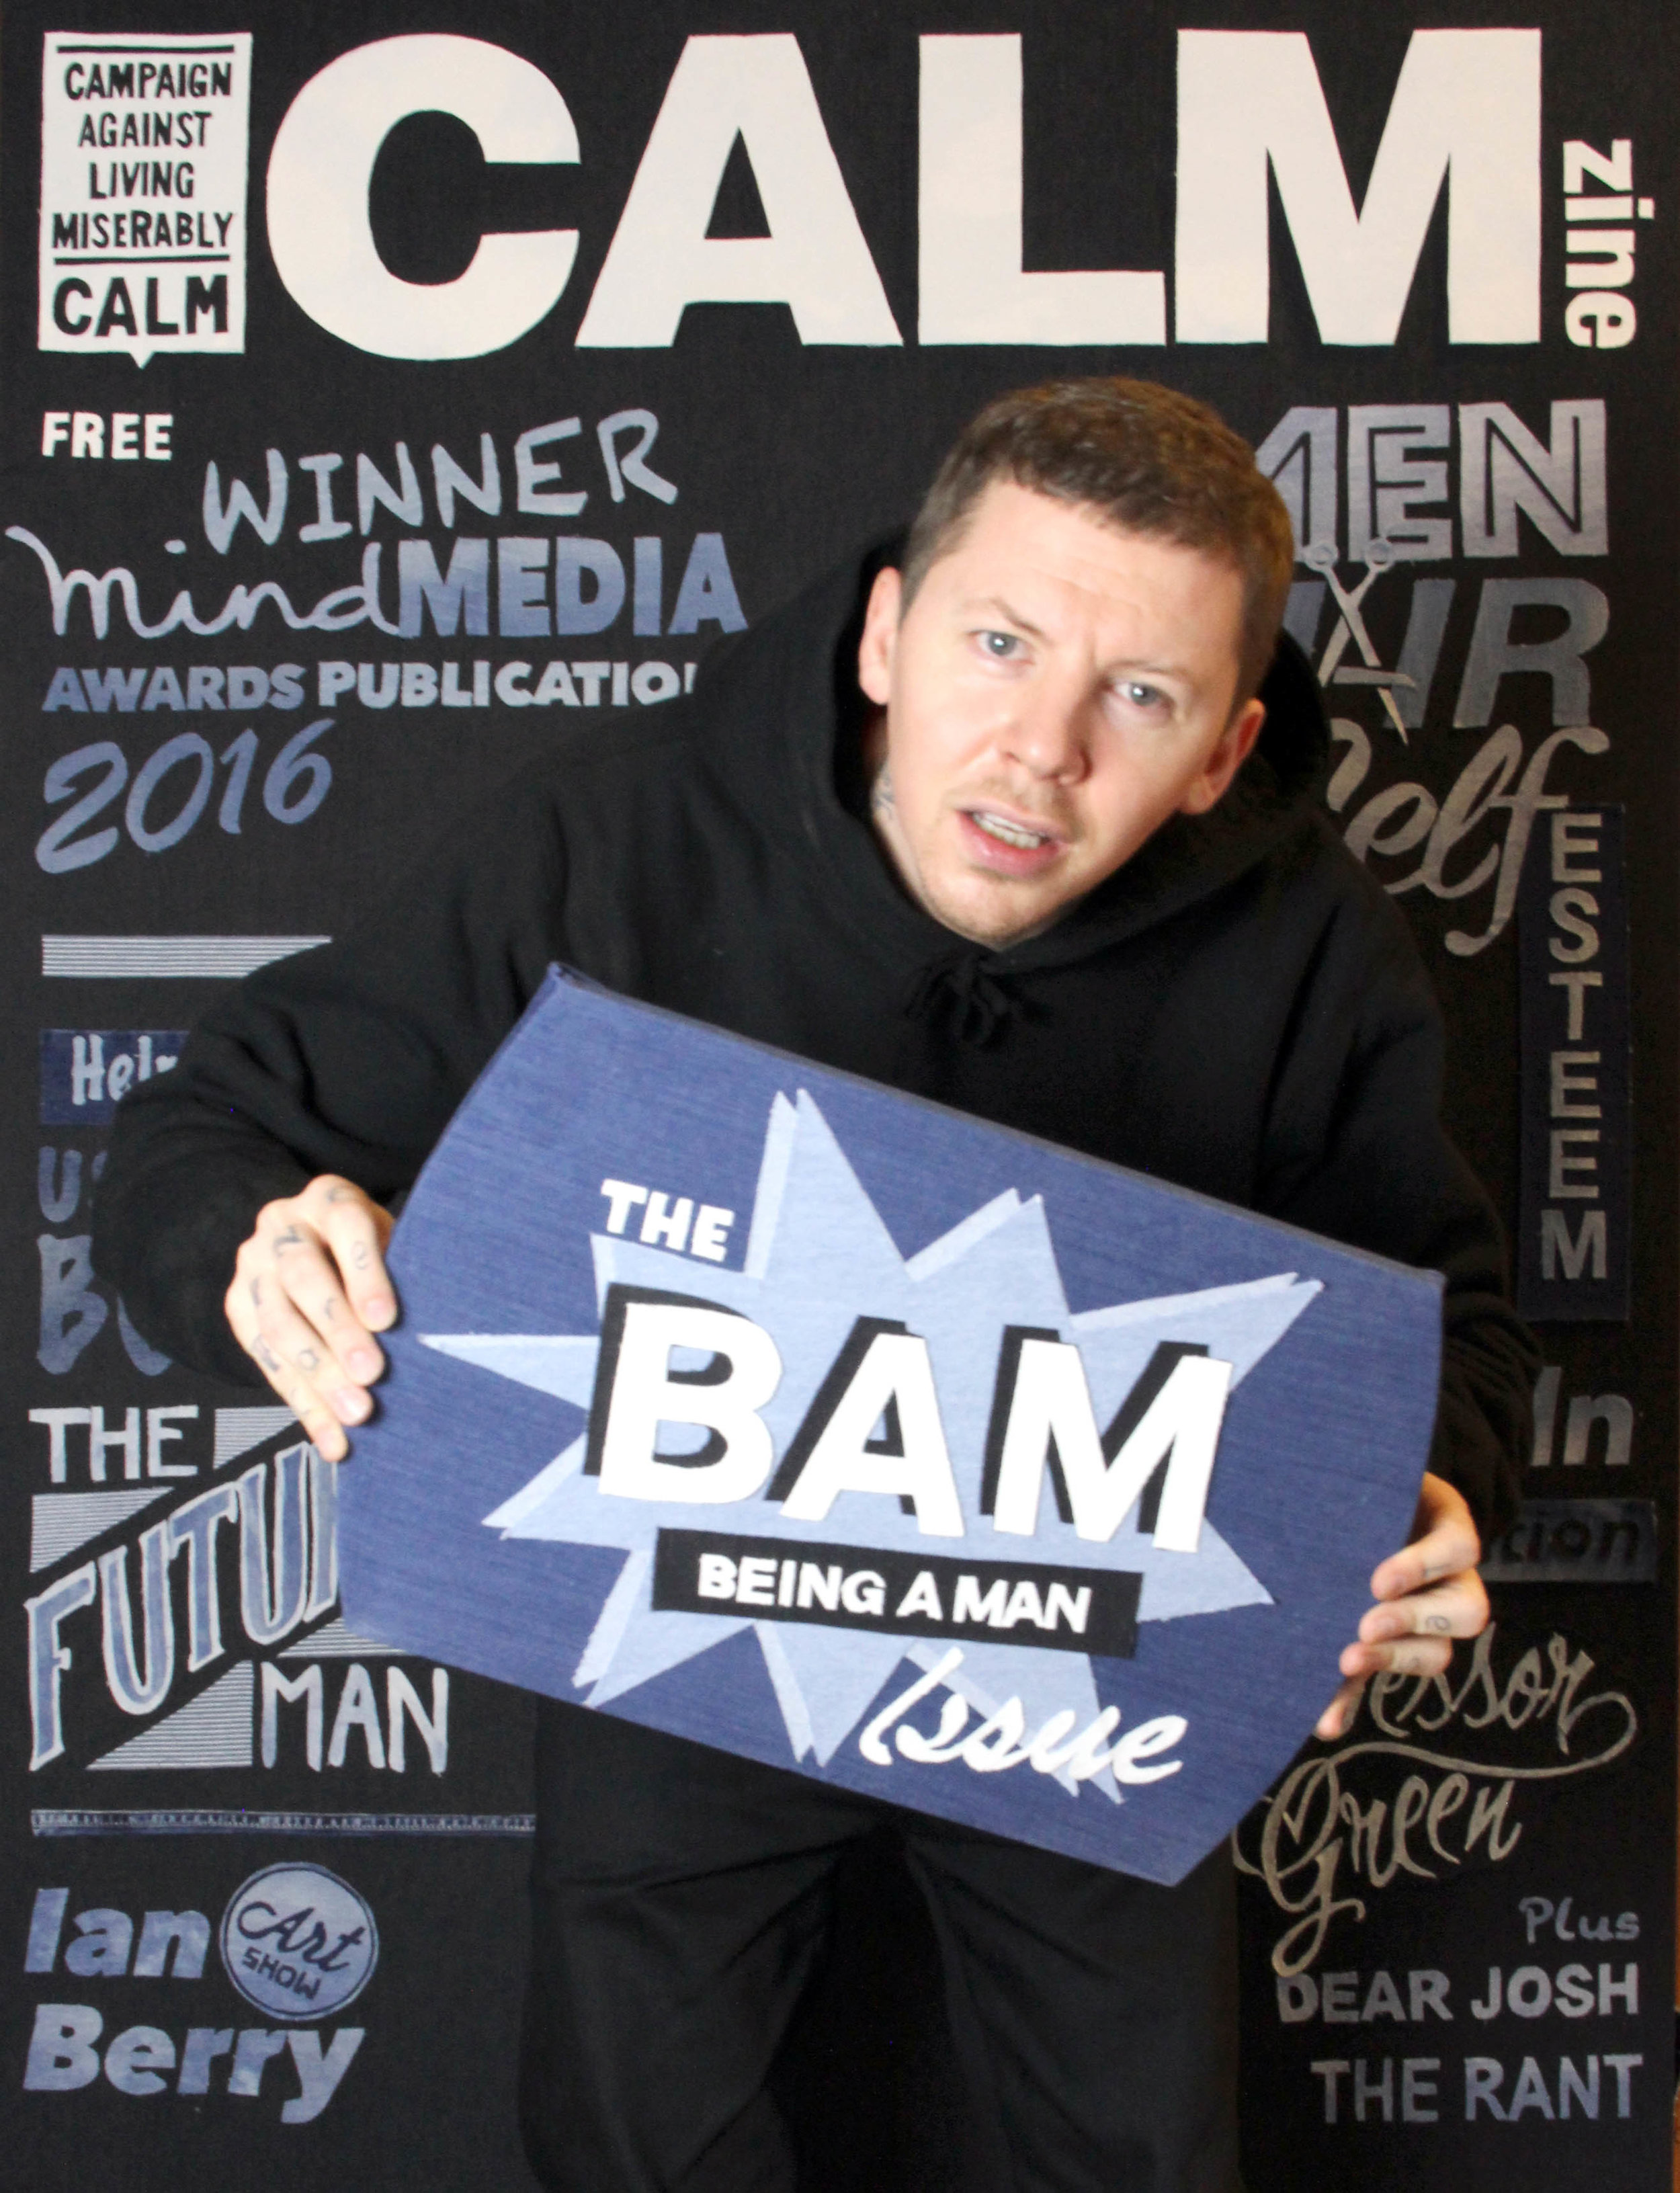 Professor Green on one of the covers of Calmzine